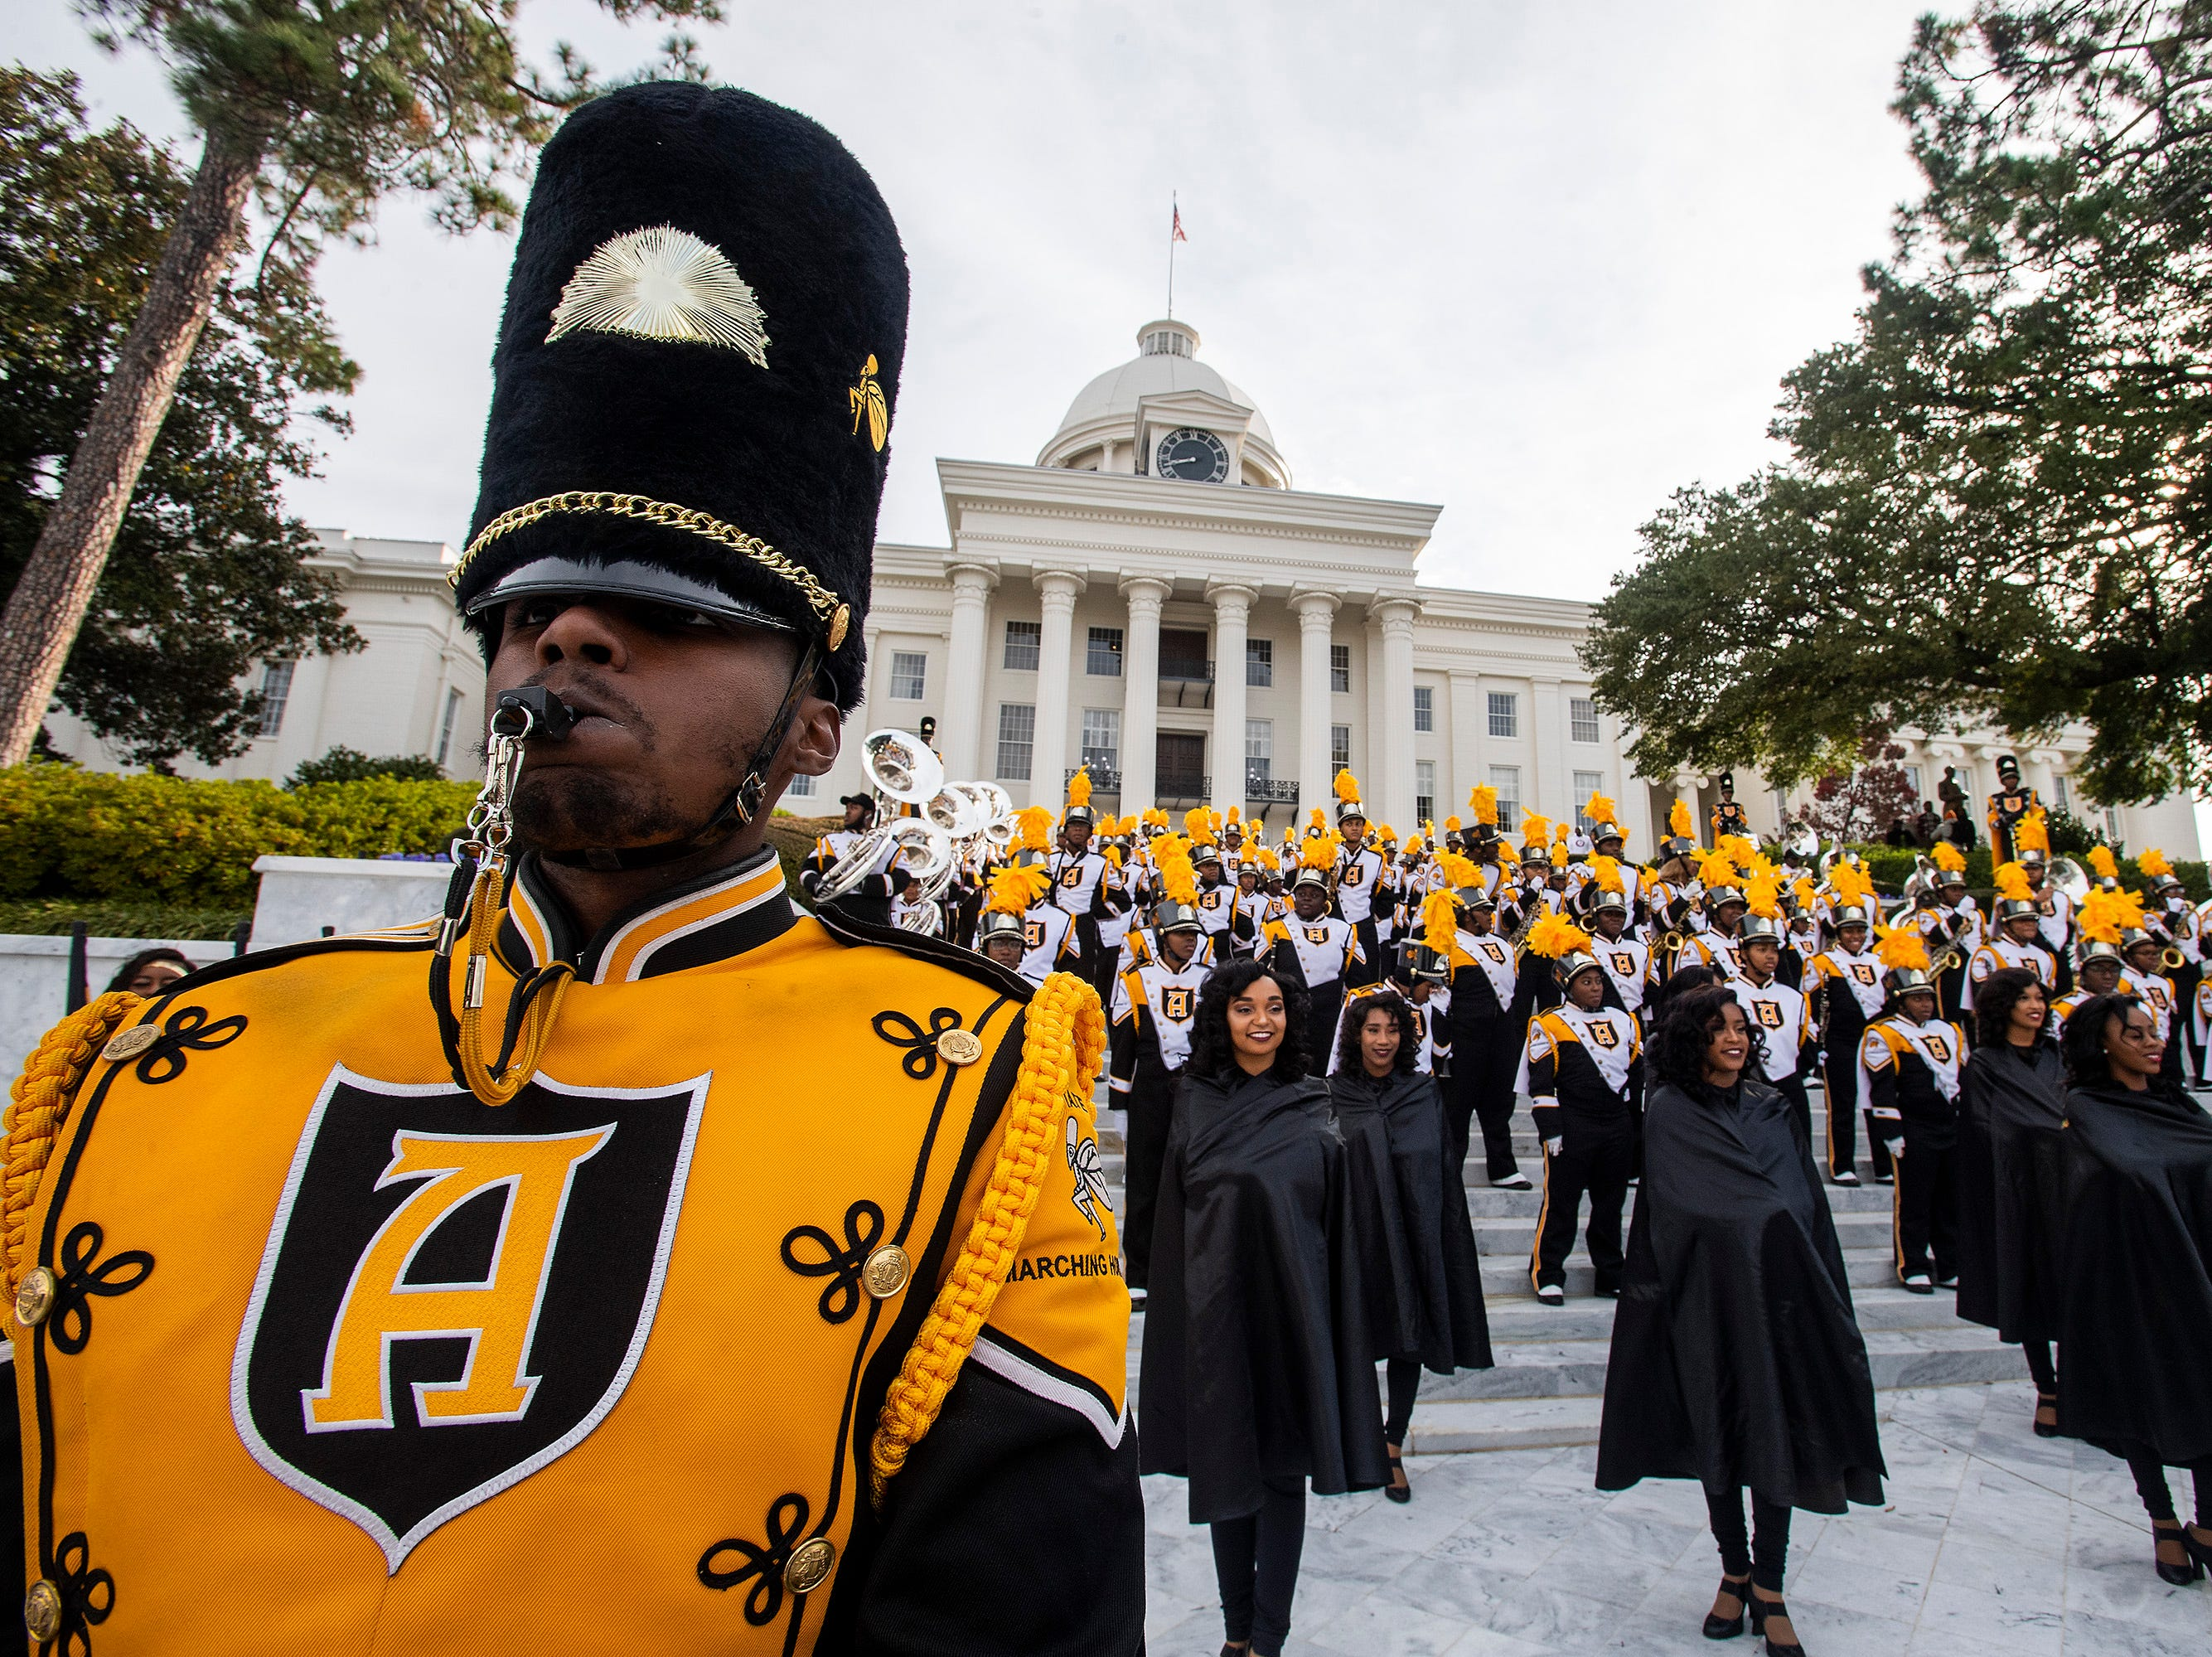 The Alabama State University Marching Hornets perform on the steps of the state capitol building before the Turkey Day Classic Parade in downtown Montgomery, Ala., on Thanksgiving Day, Thursday November 22, 2018.